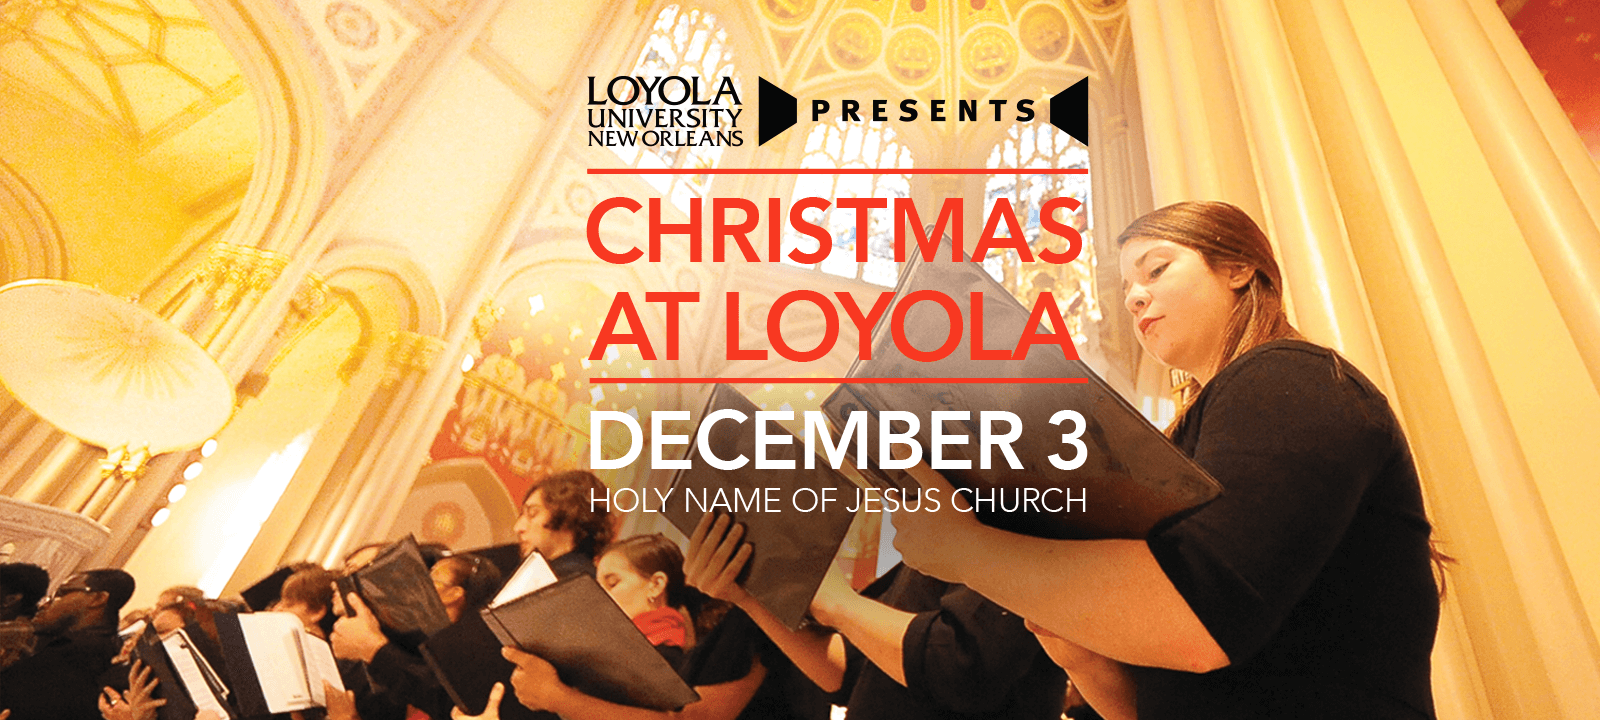 From the brass and choir opening to the Loyola Strings and the audience sing-alongs, come experience the joy of the season